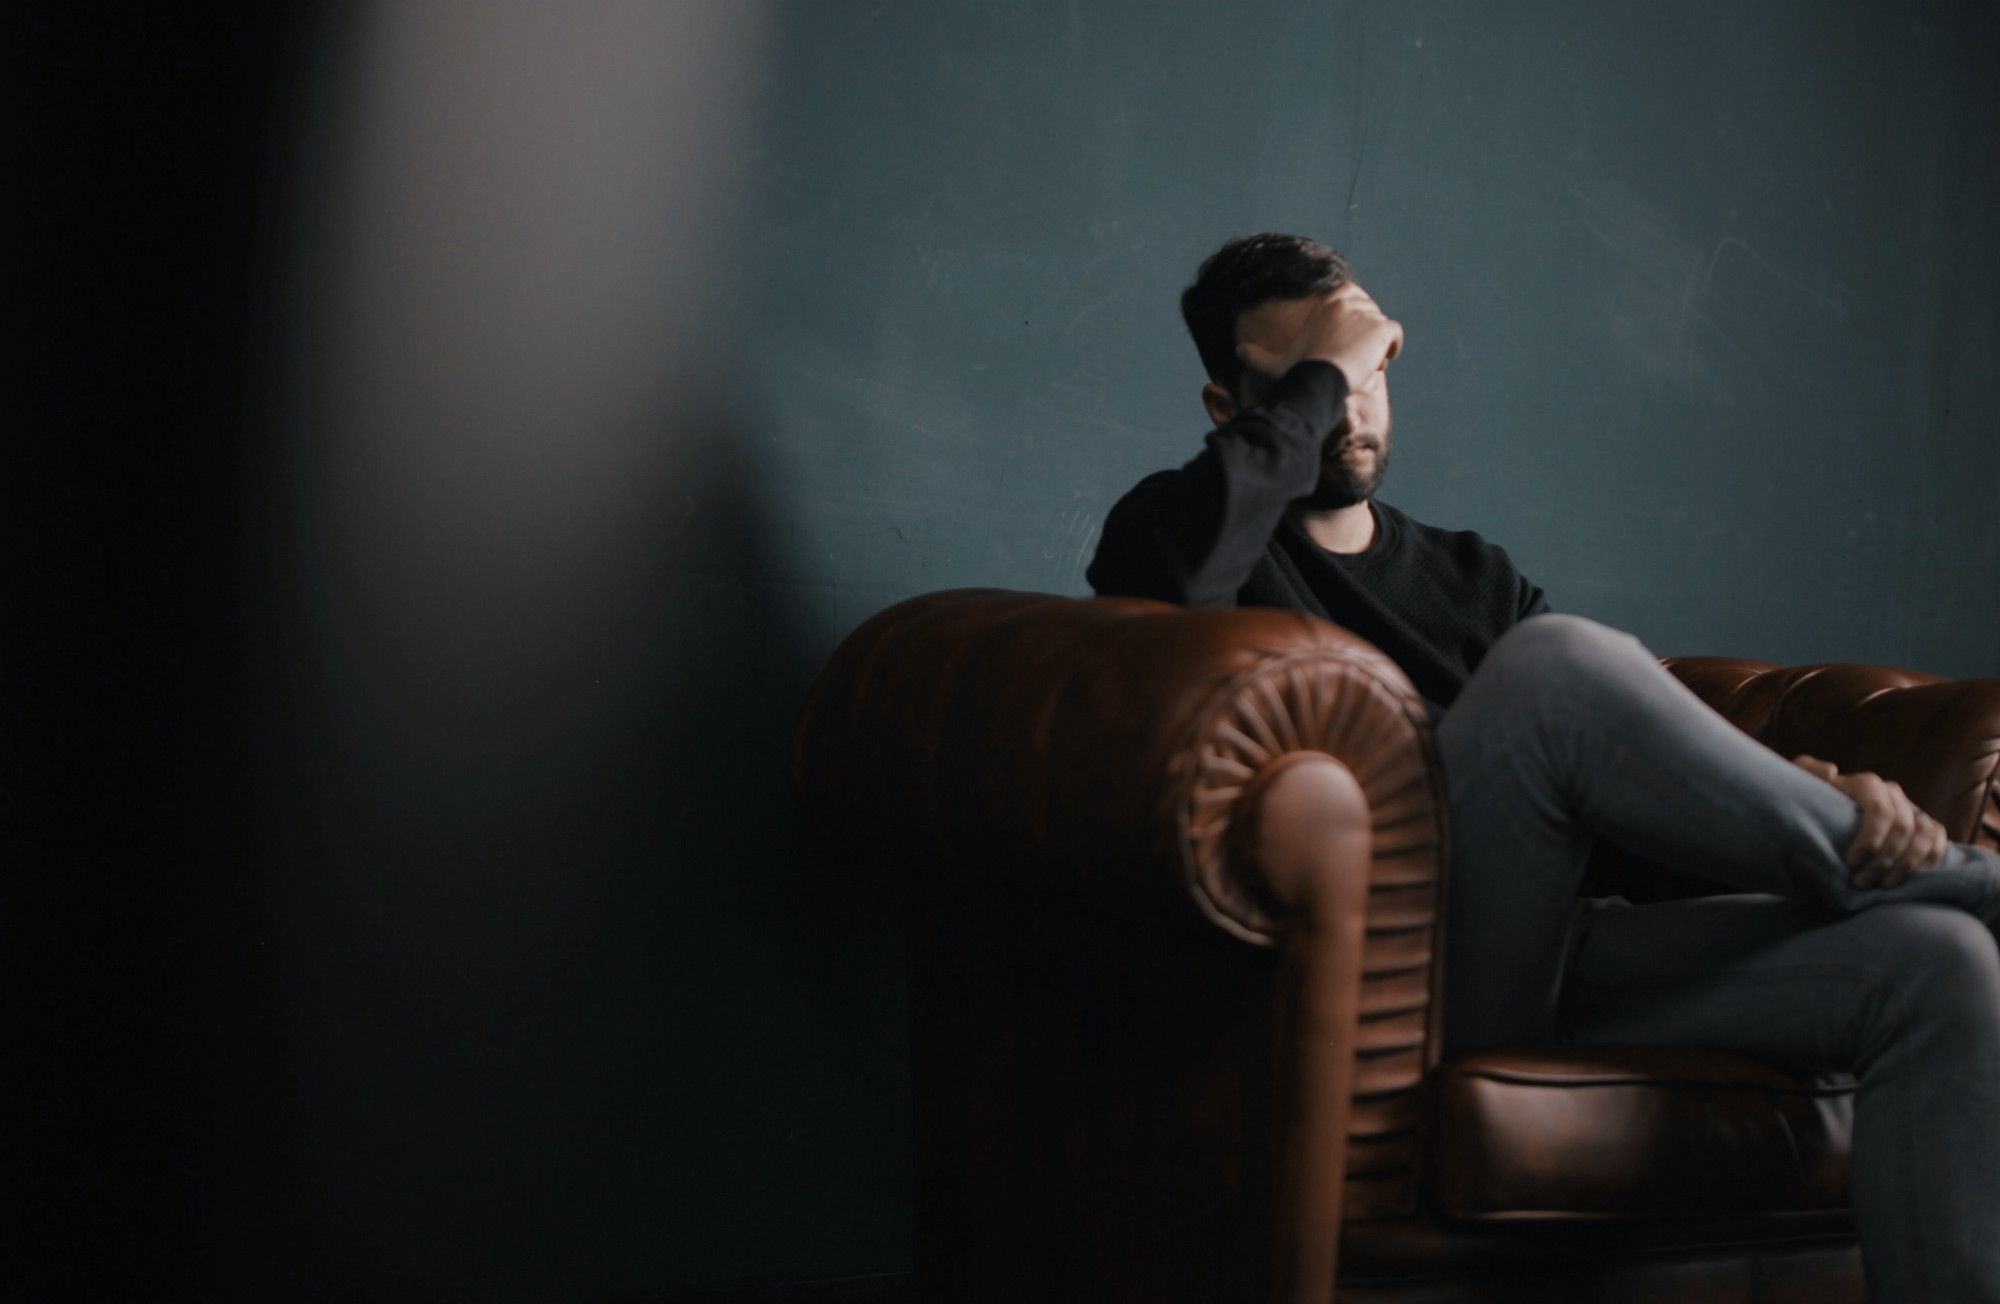 Man sitting on couch with his forehead in his hand, looking upset